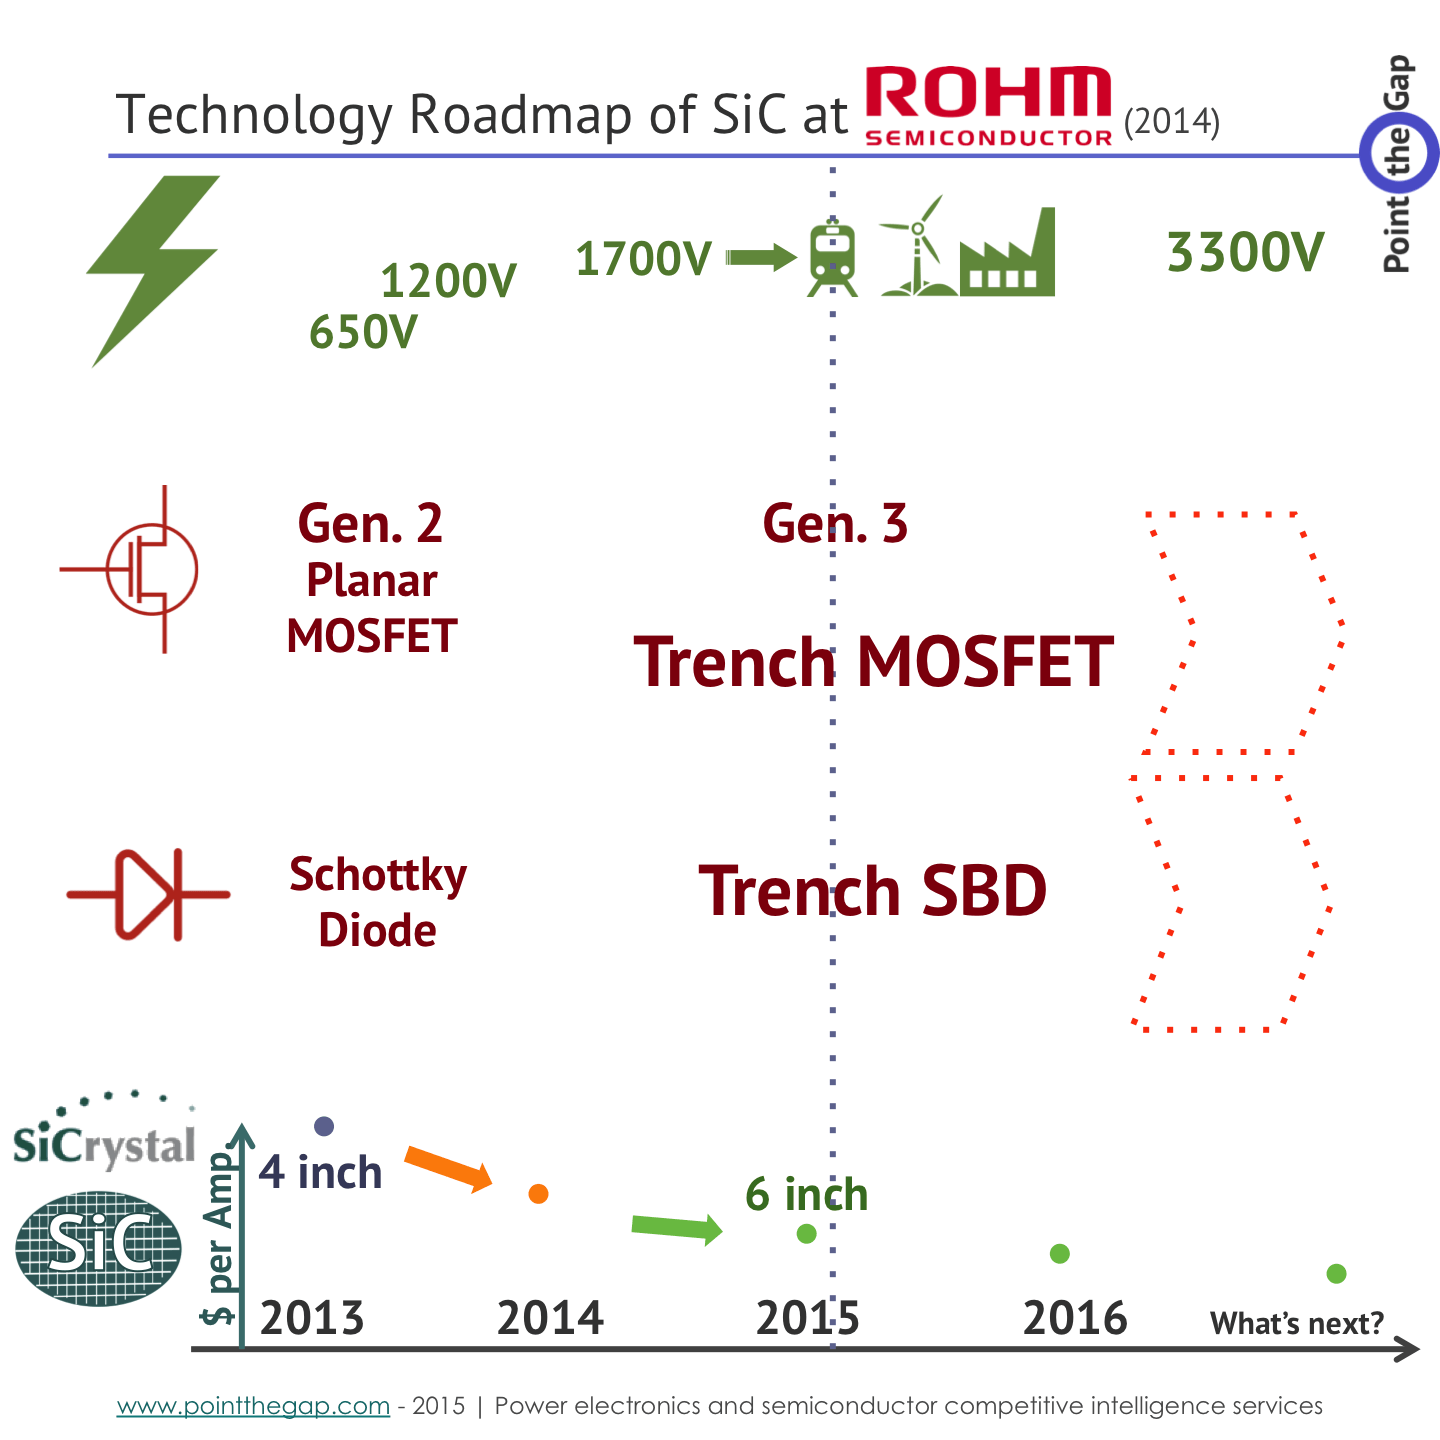 rohm roadmap on SiC diodes and mosfet releasing generation in 2015 and going up to 1700V